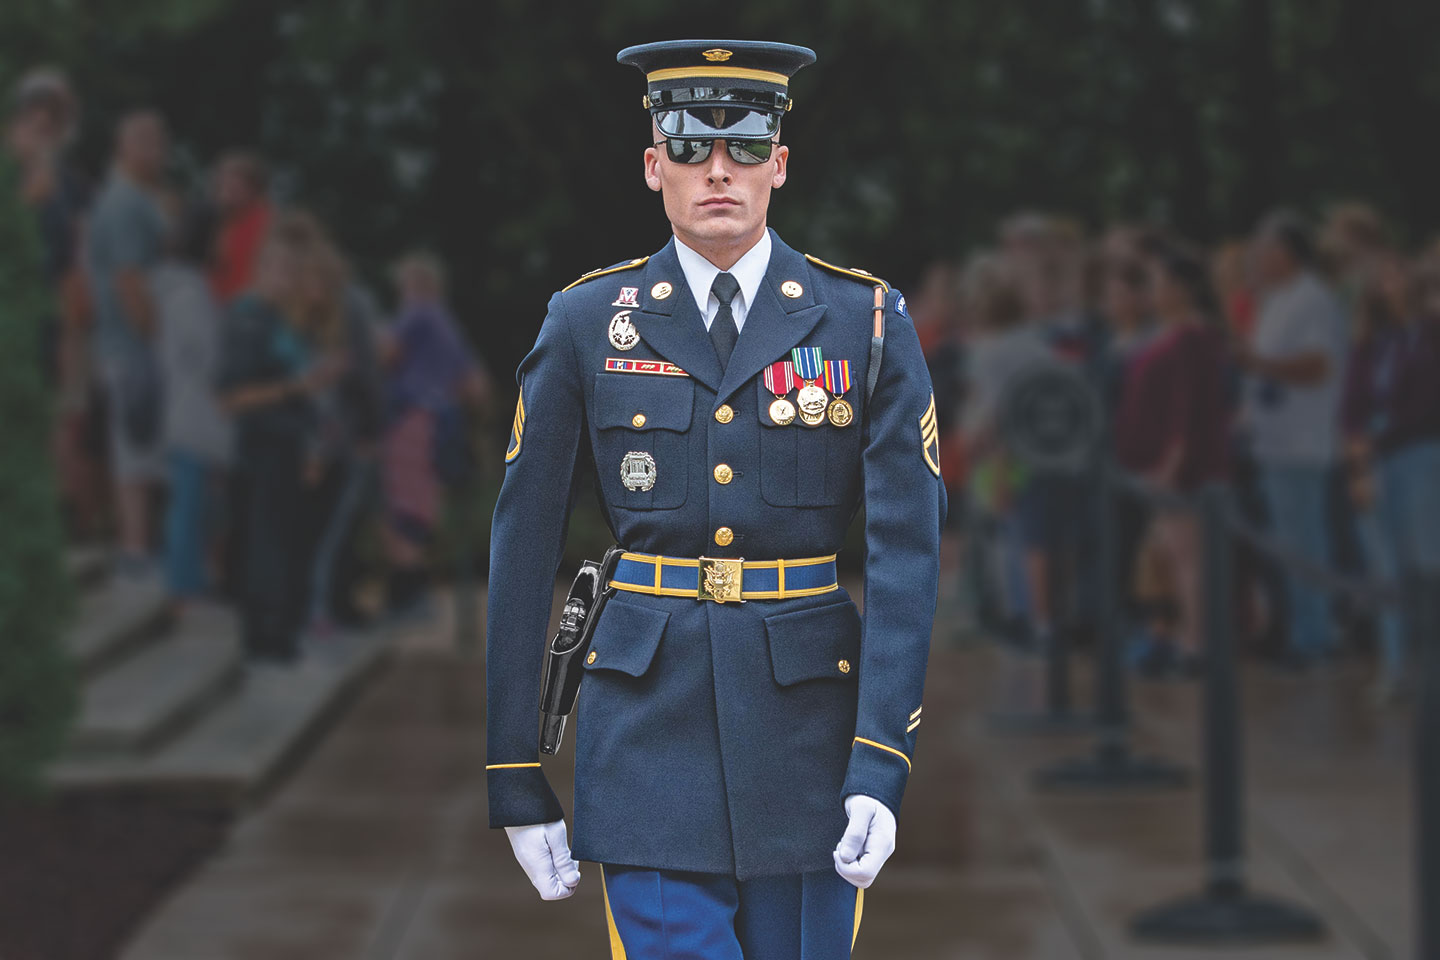 Tomb-of-the-Unknown-Soldier-7